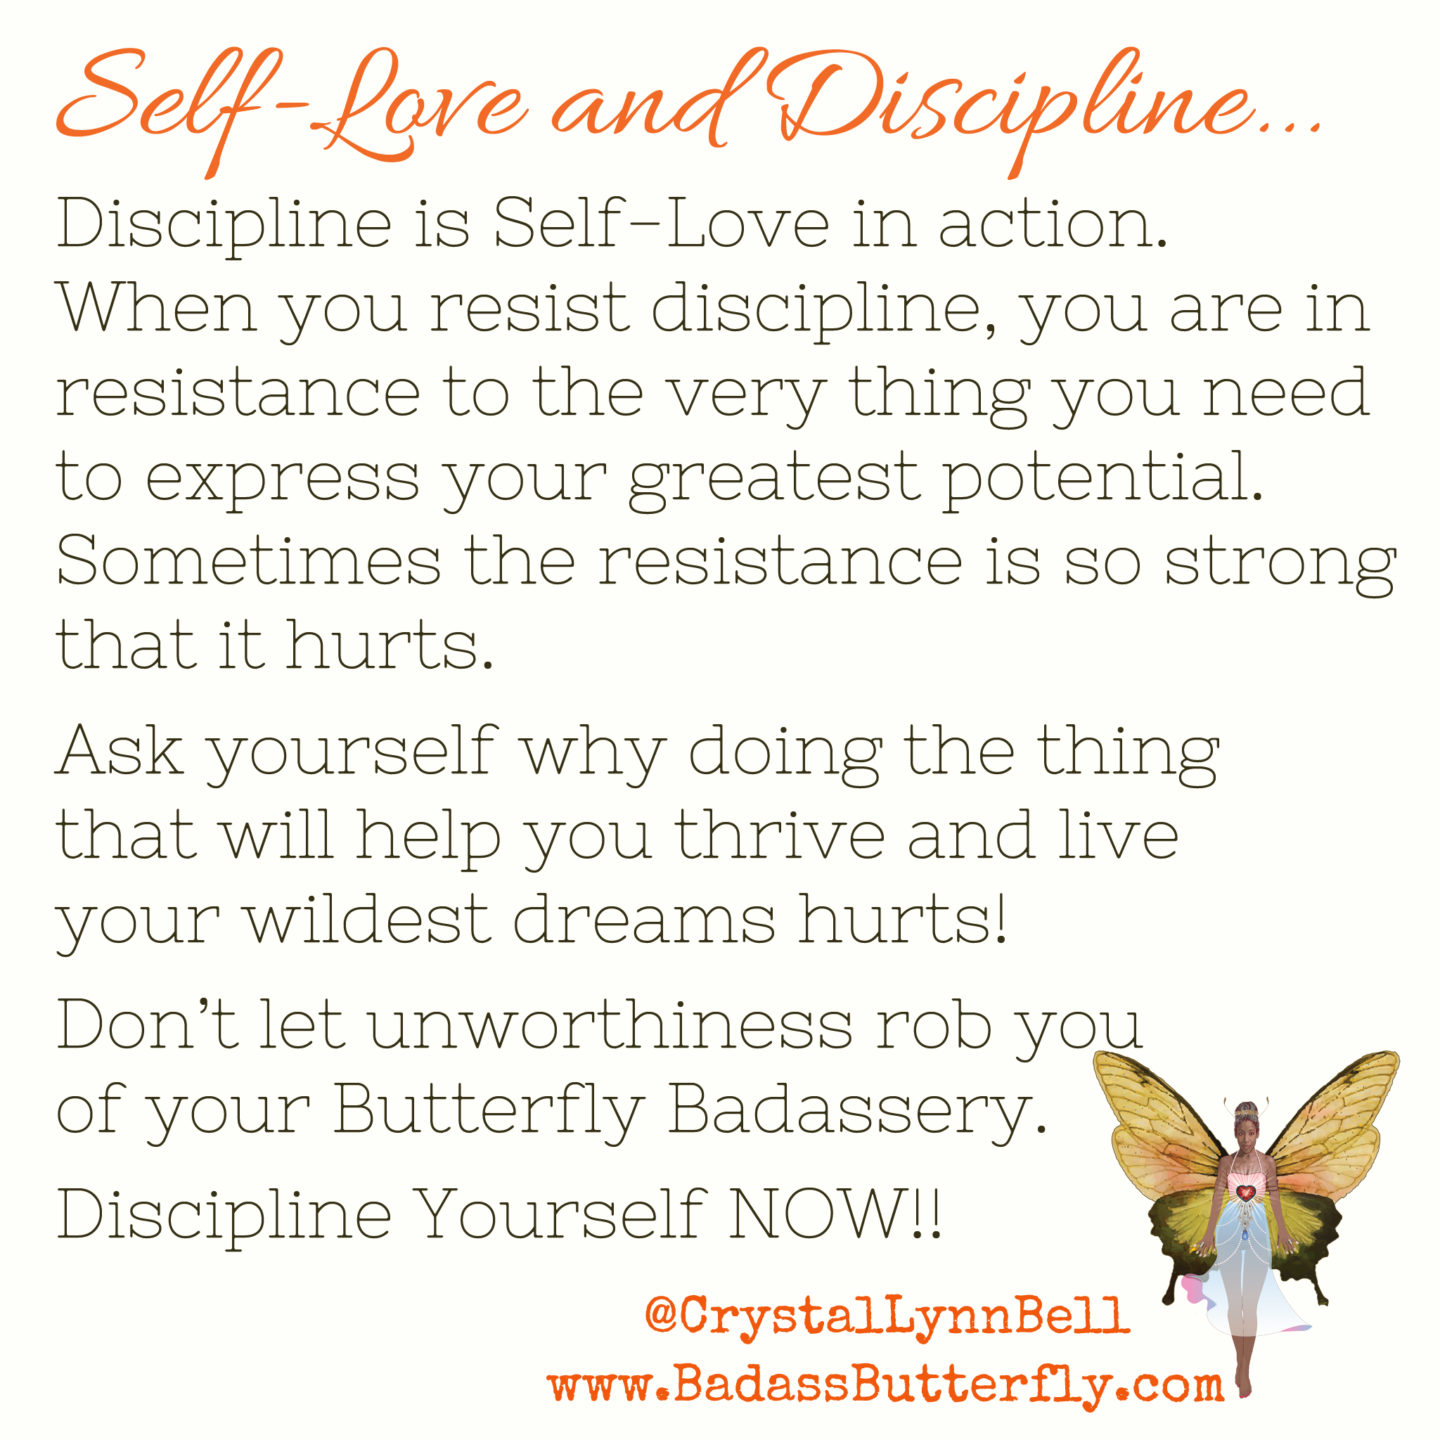 Discipline is Self-Love in Action